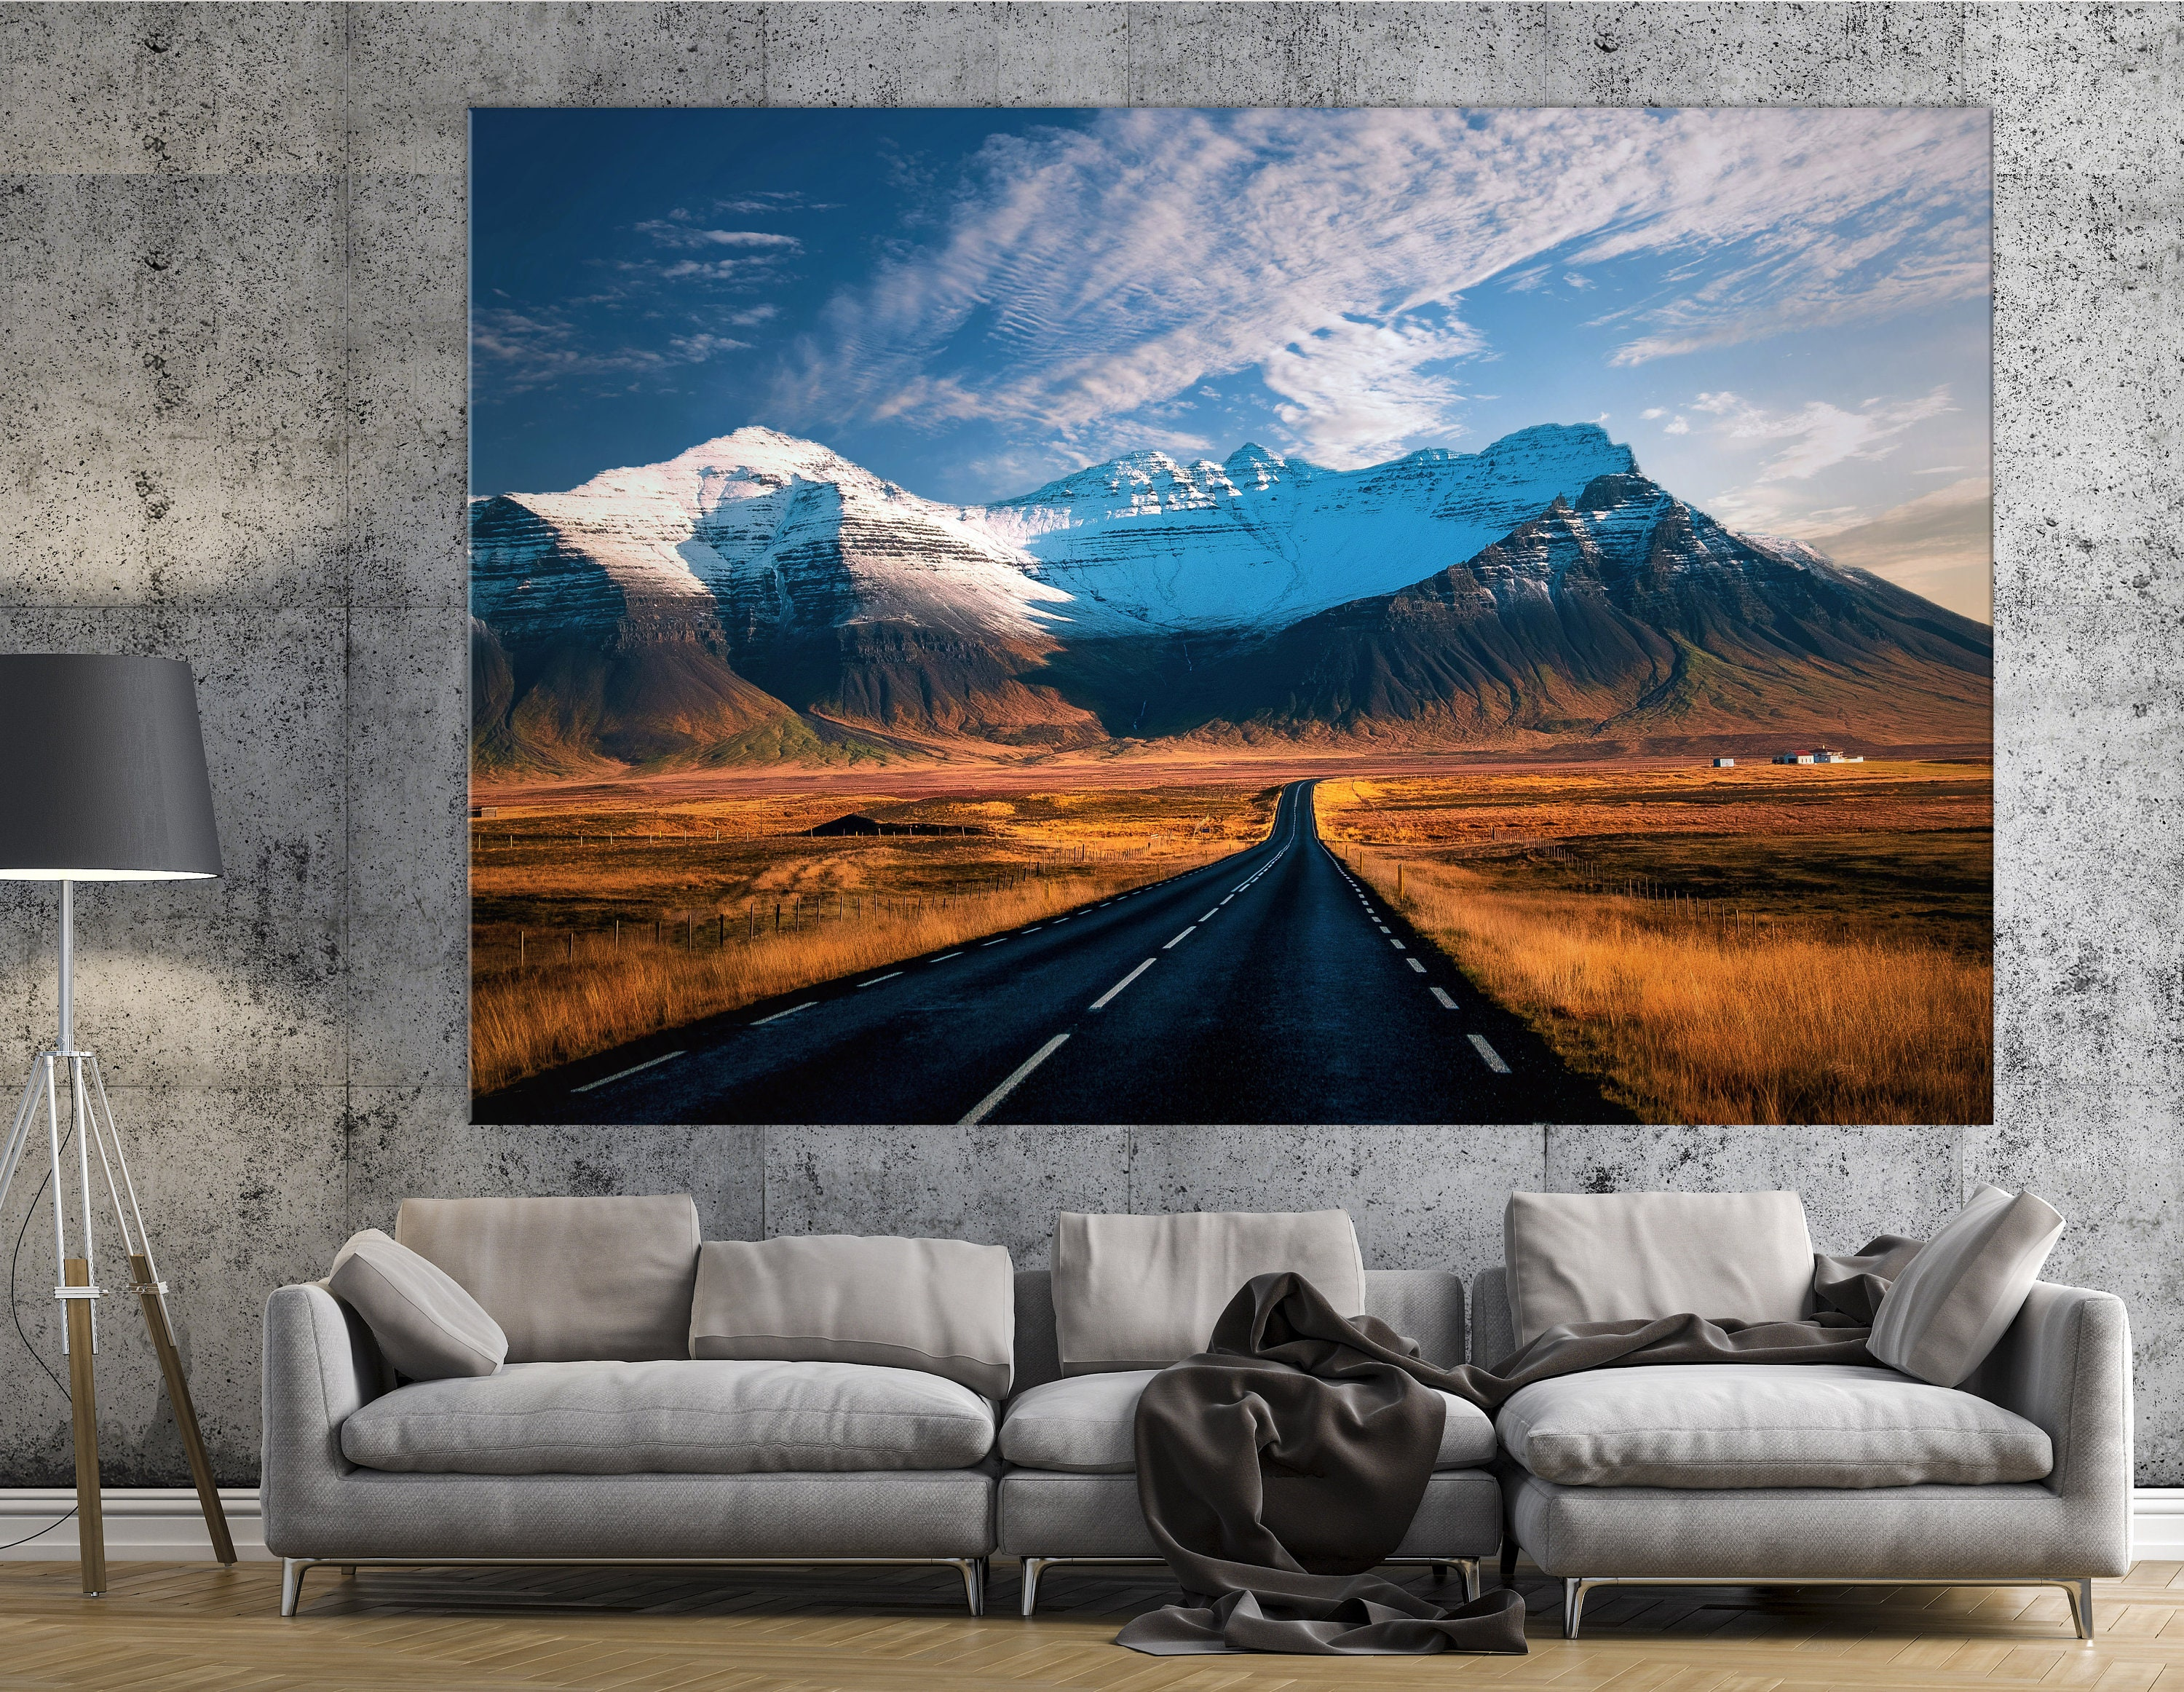 Beautiful Mountains Canvas Print Ready To Hang Wall Art Large Wall Art Office Wall Art Mountains Wall Art Wall Mural Canvas Art